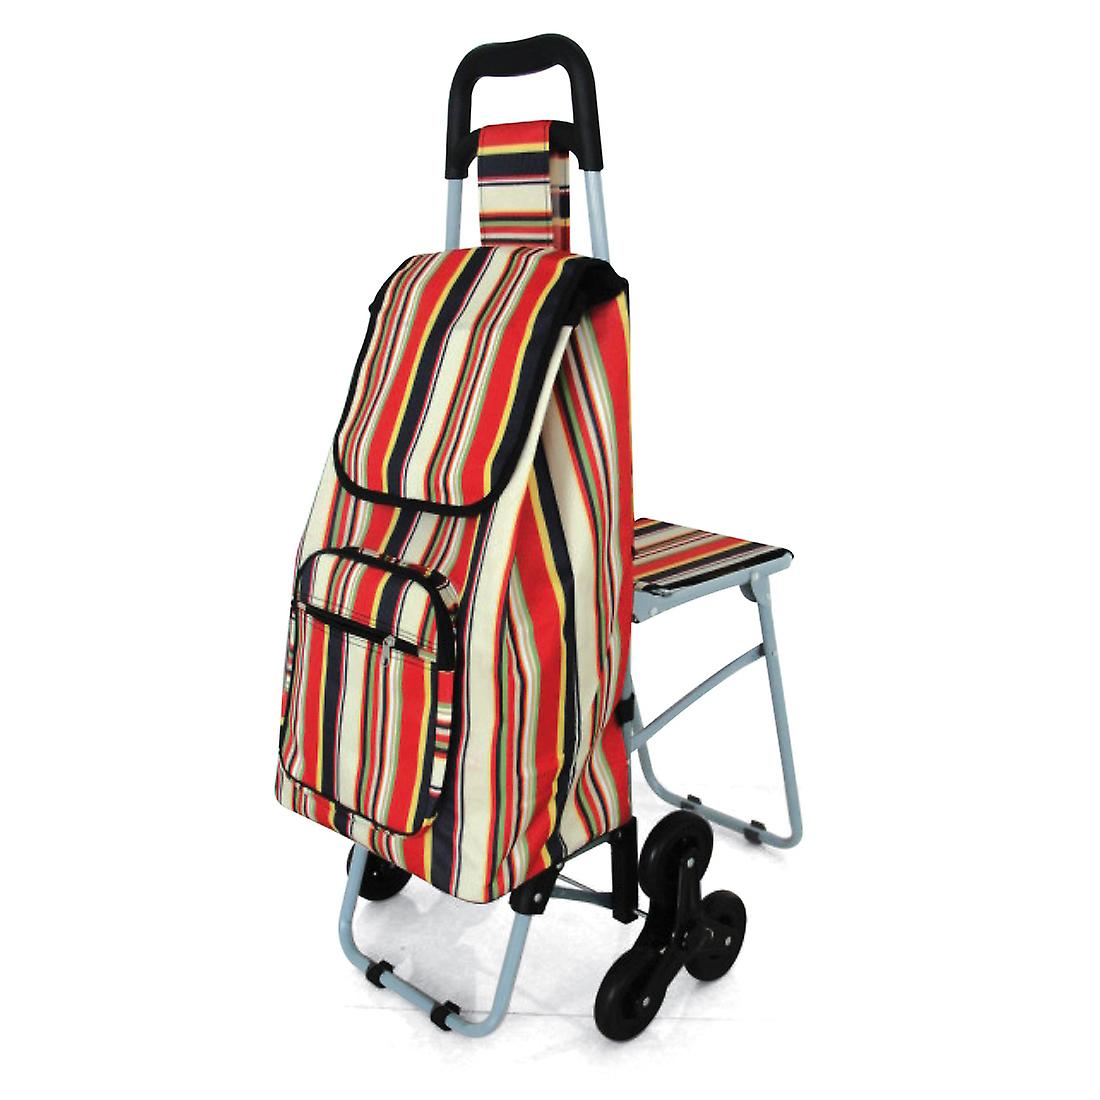 Leisure Trolley with Seat - Triple Wheel